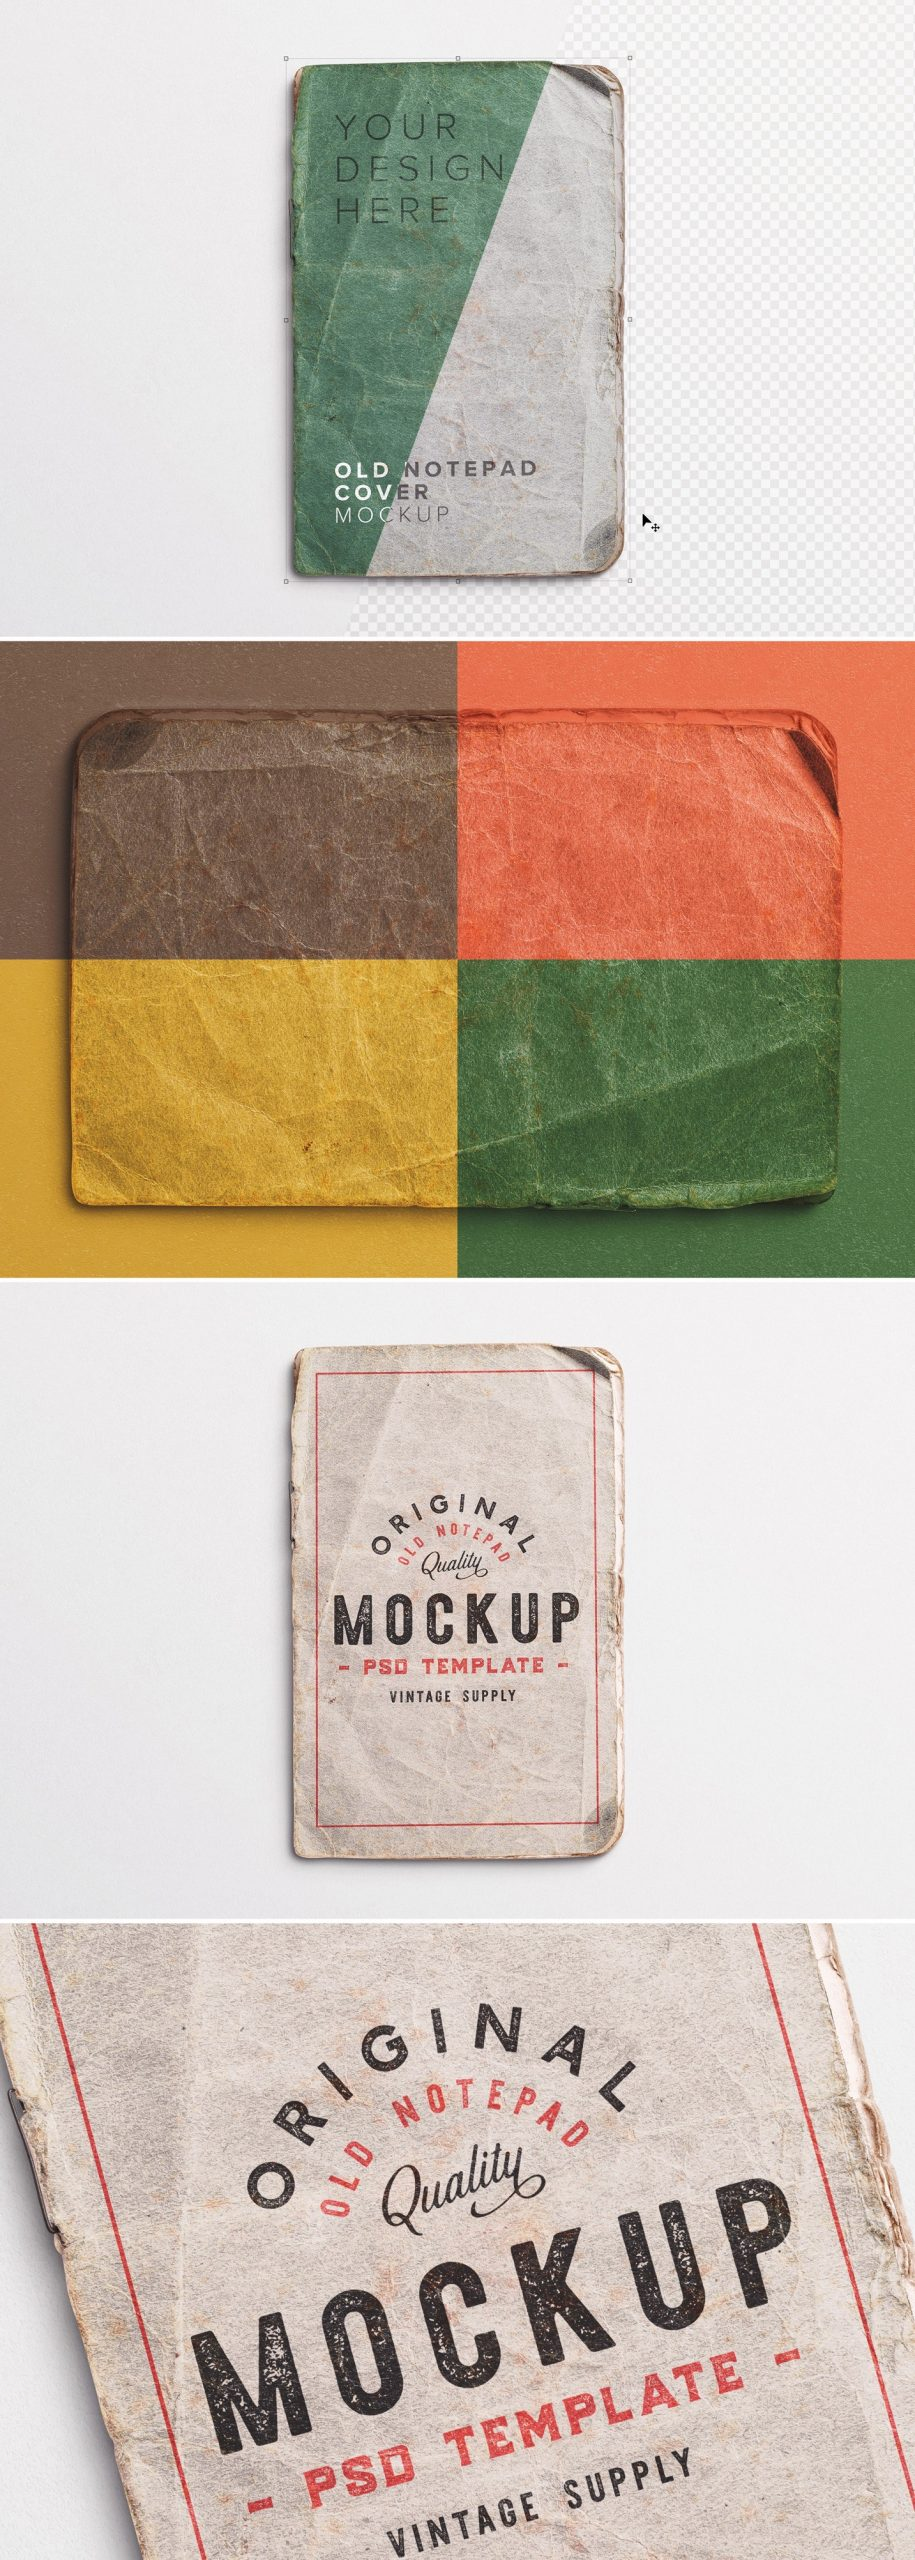 old notepad cover mockup preview1 1 scaled